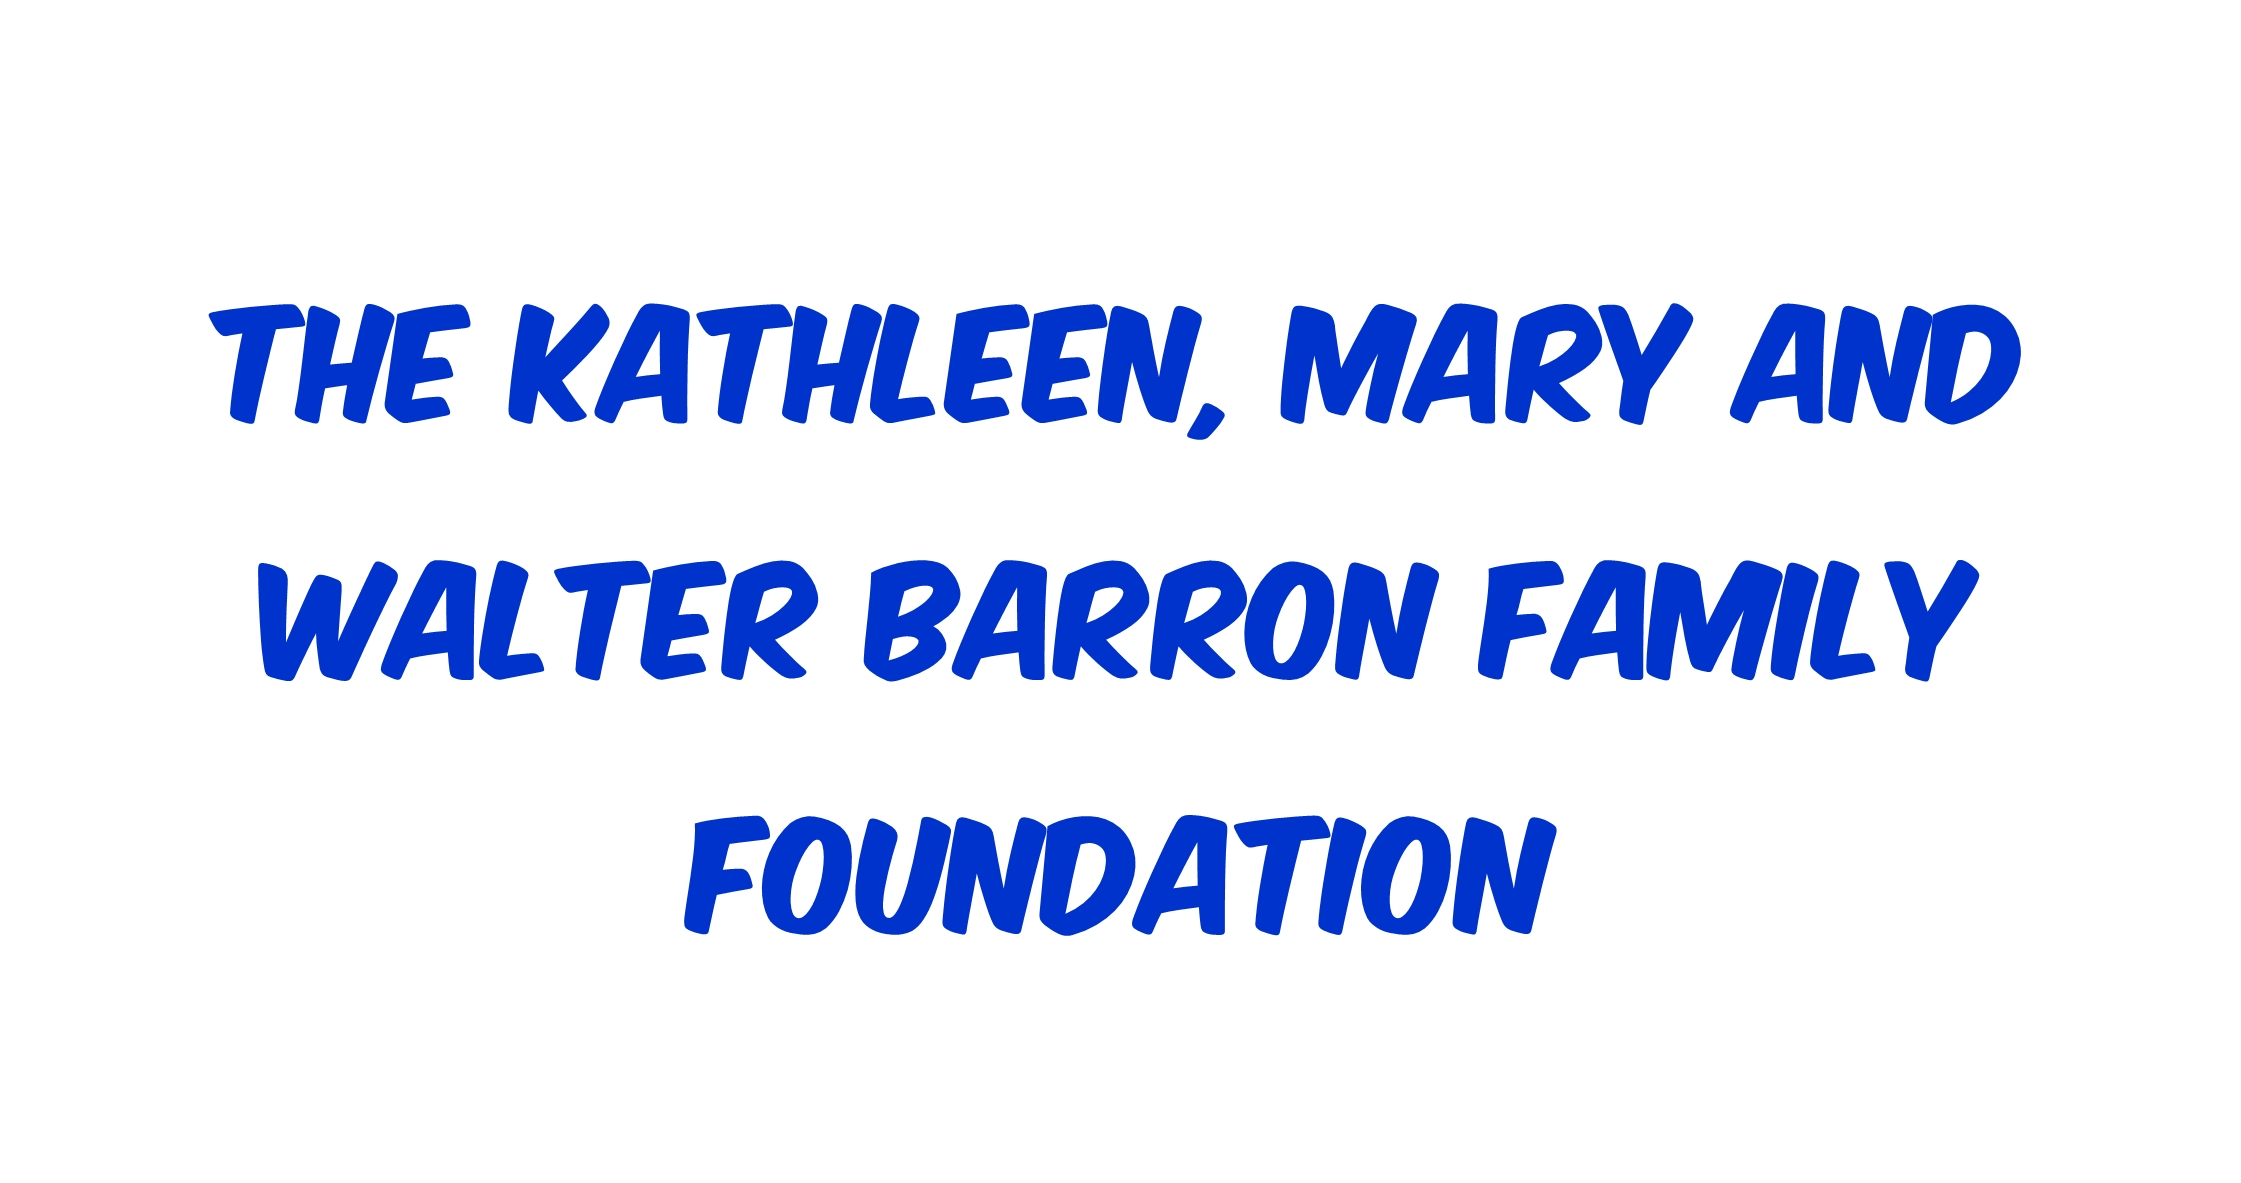 The Kathleen, Mary and Walter Barron Family Foundation